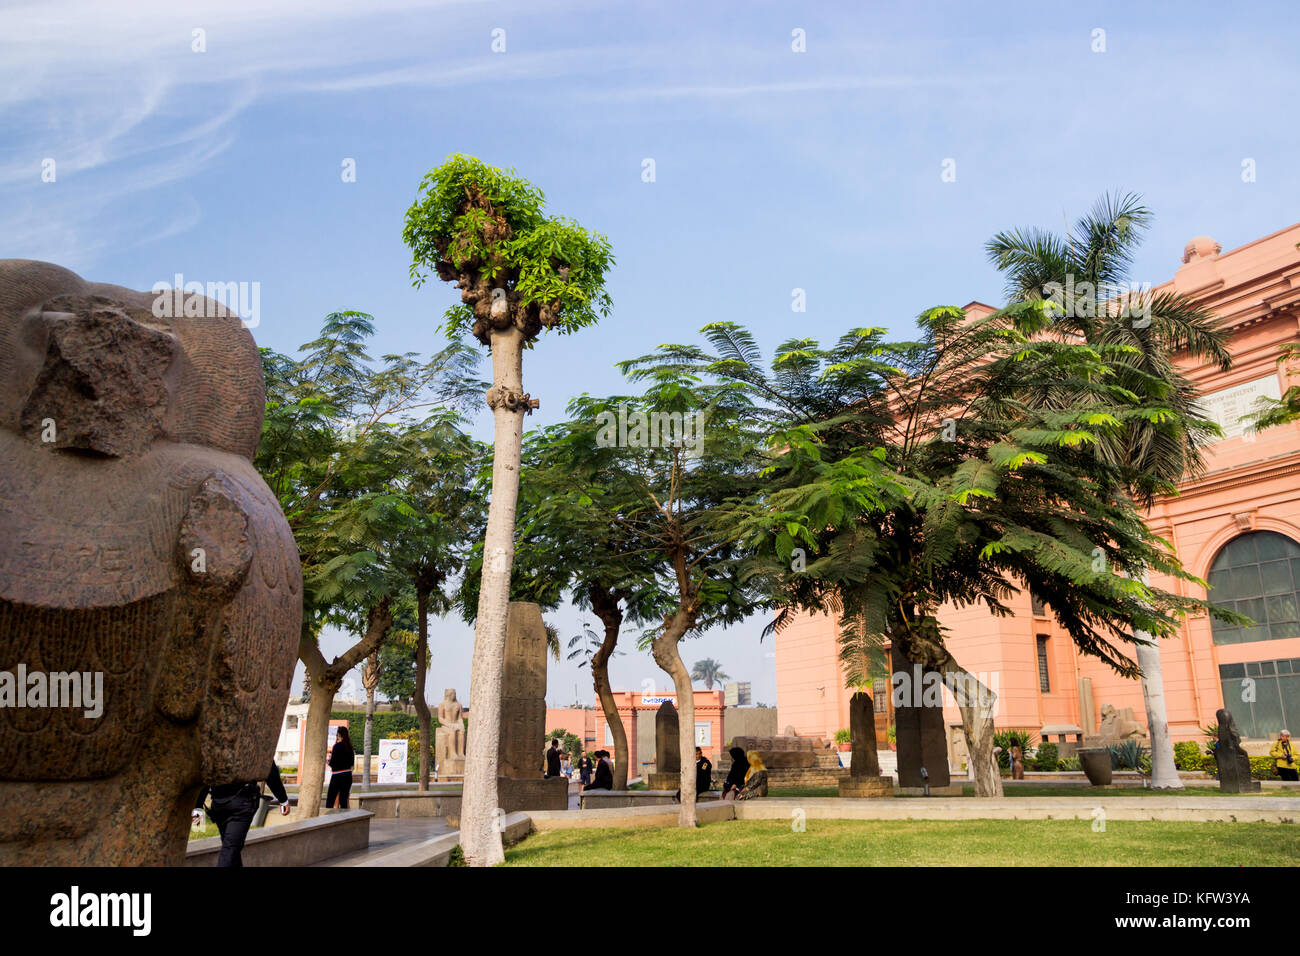 Palms on background in Cairo, Egypt - Stock Image